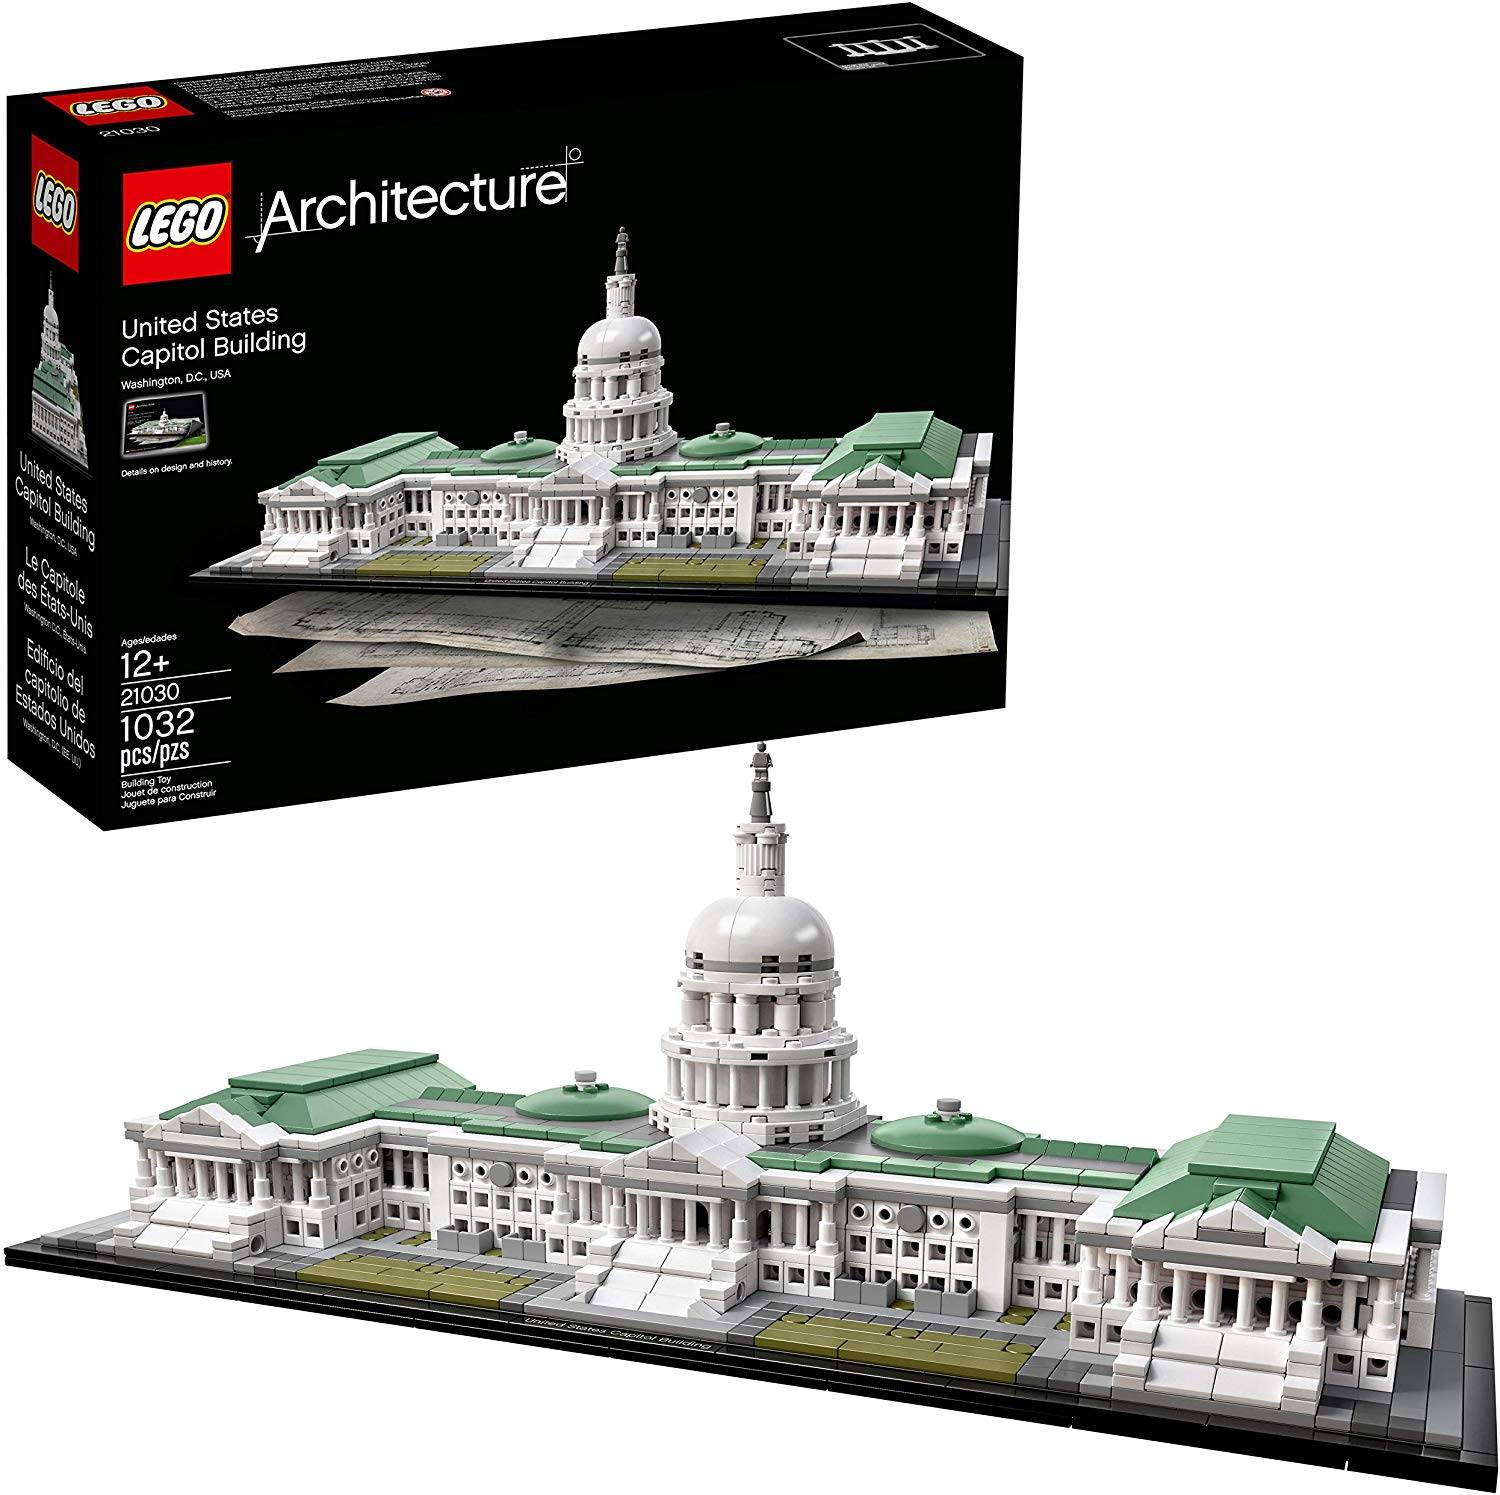 The Lego United States Capitol Building Kit